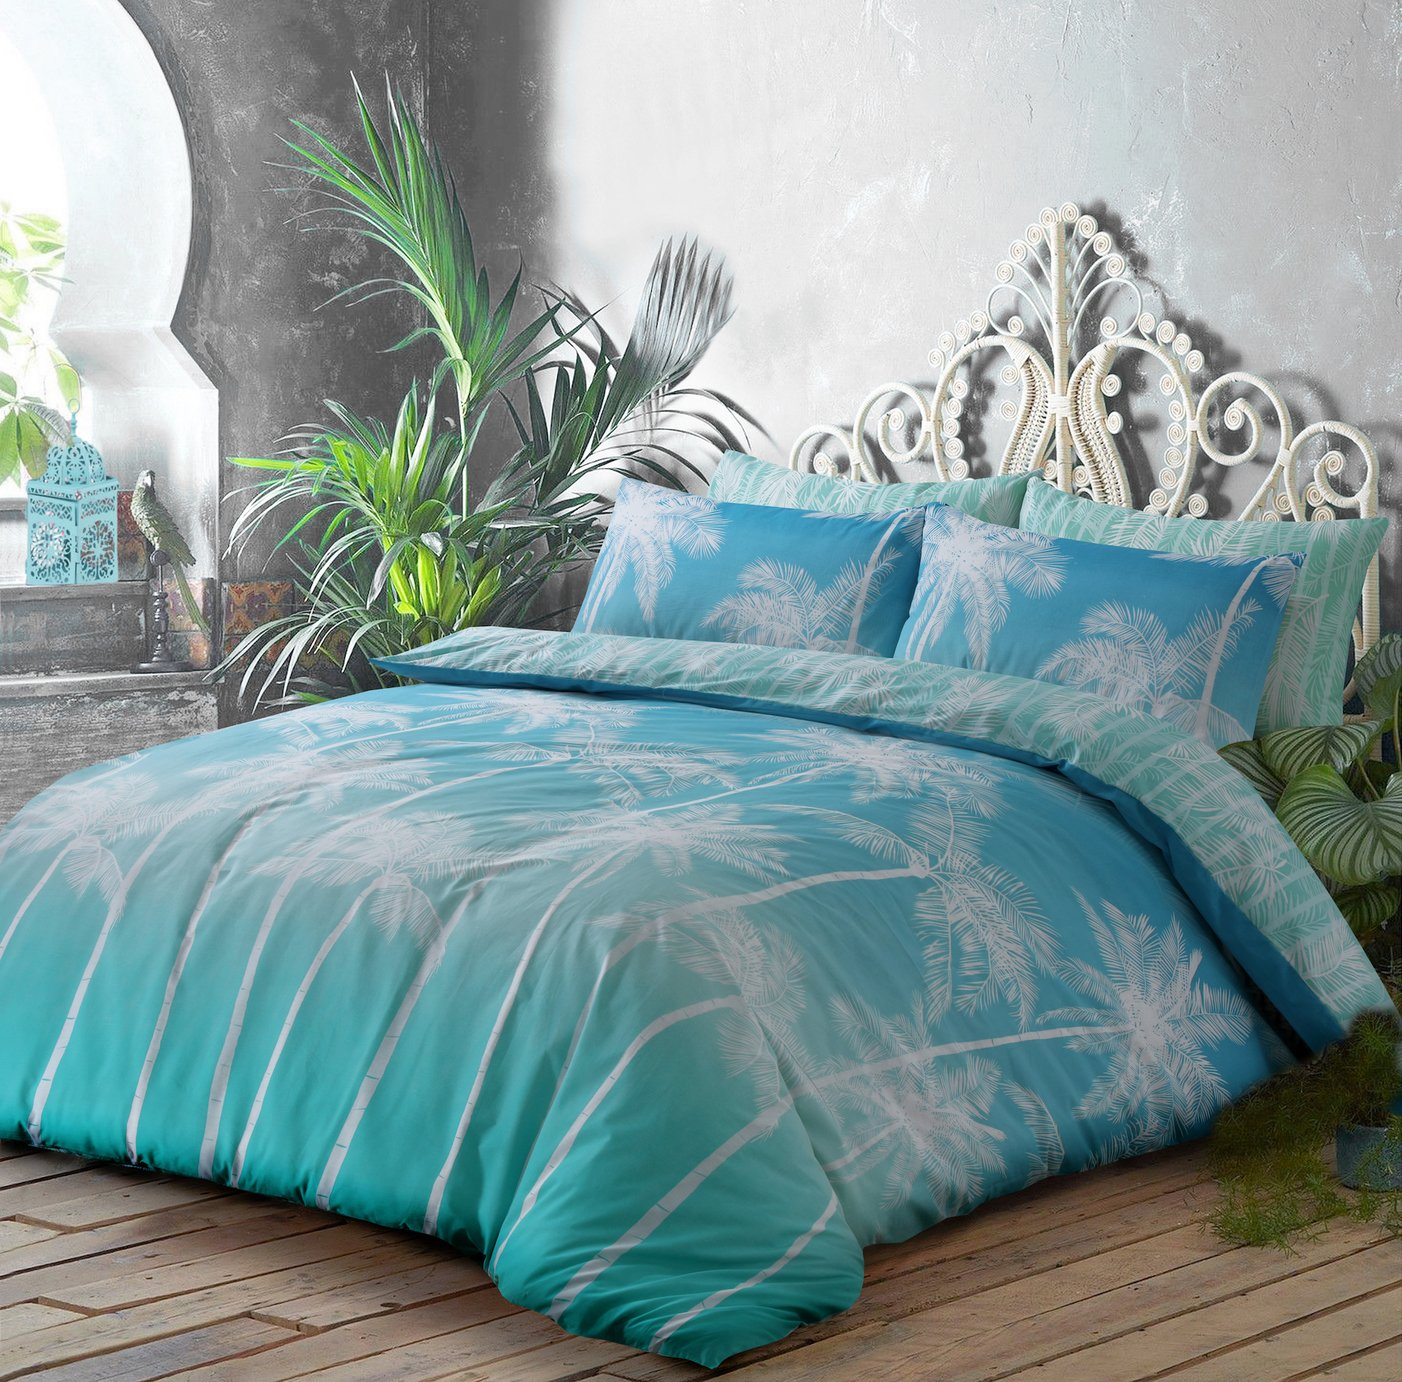 Argos Home Teal Ombre Palm Bedding Set - Single